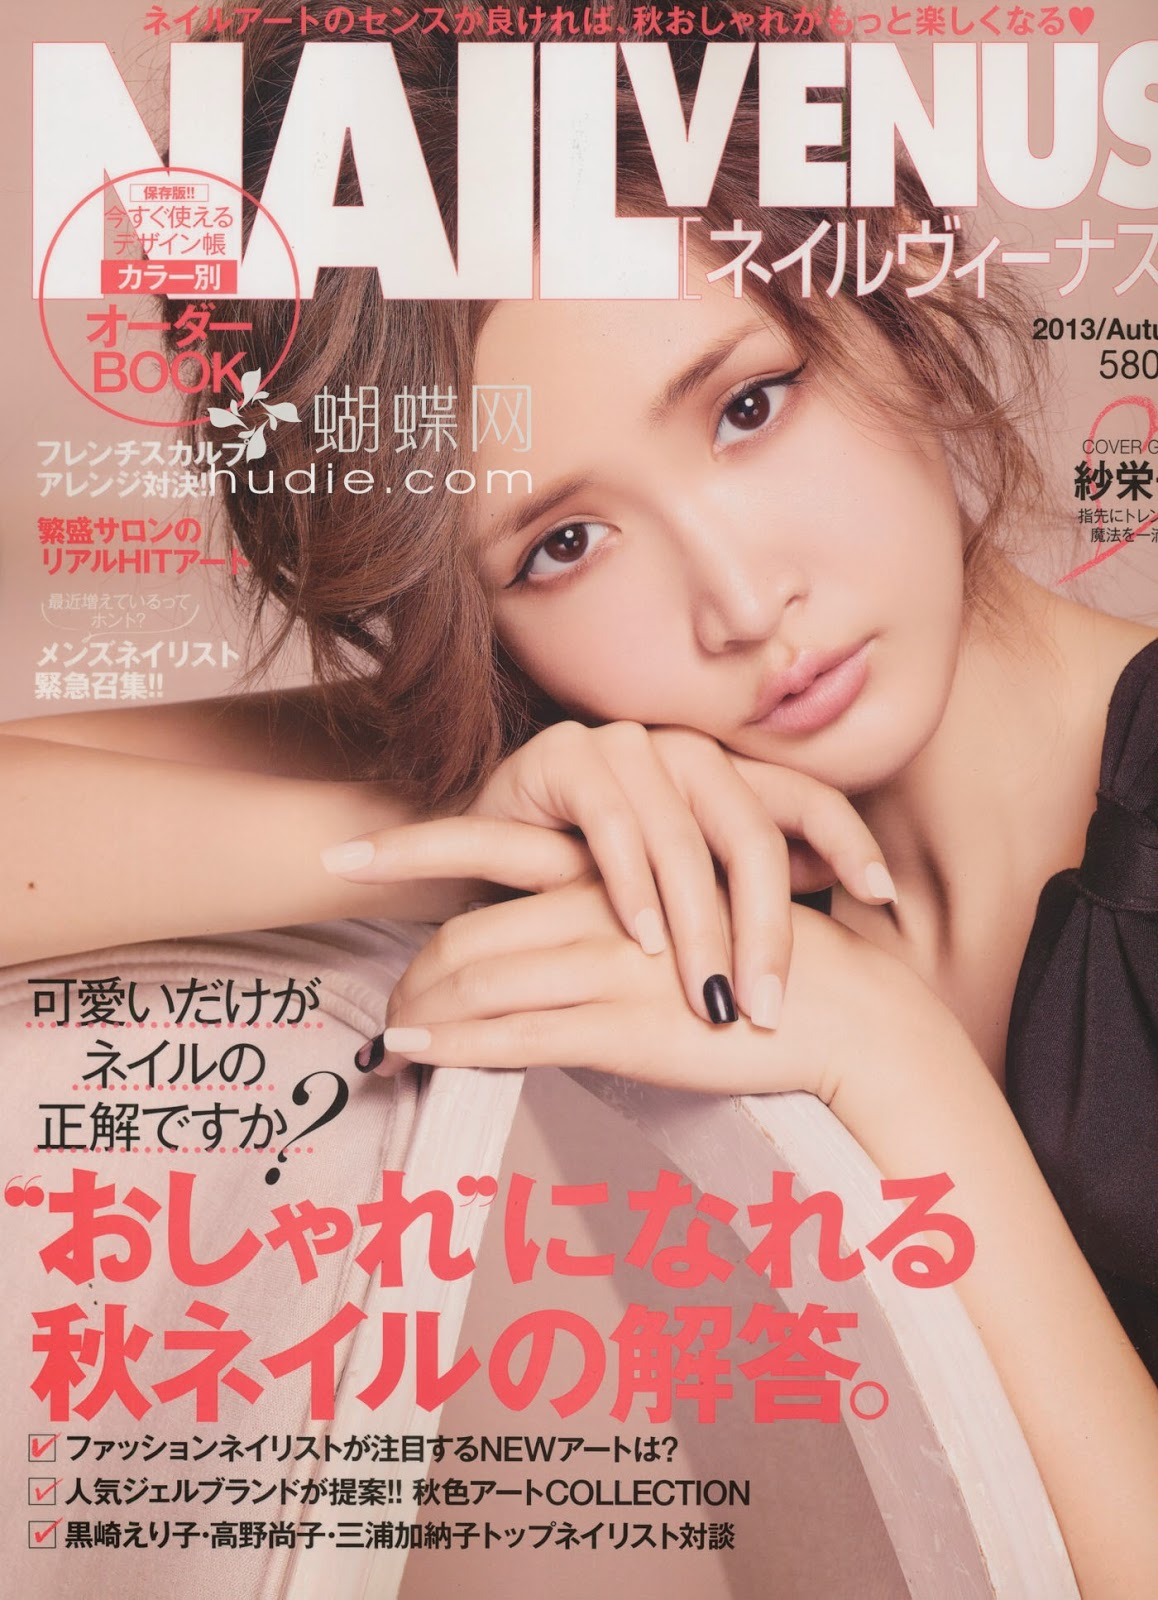 Scans | Nail Venus Fall 2013